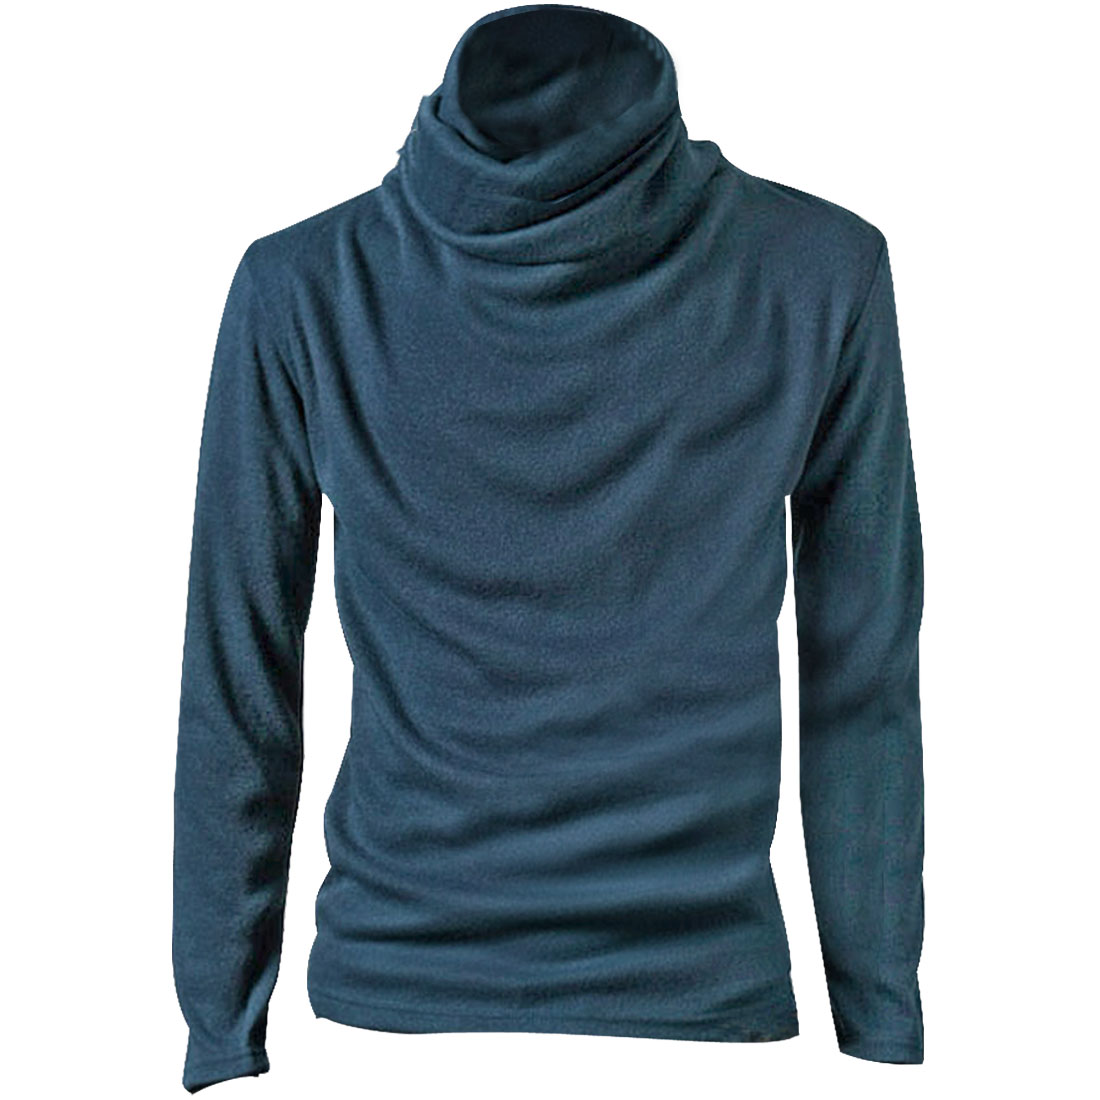 Men Steel Blue Stylish Turtle Neck Solid Color Simple Style Casual Top Shirt M